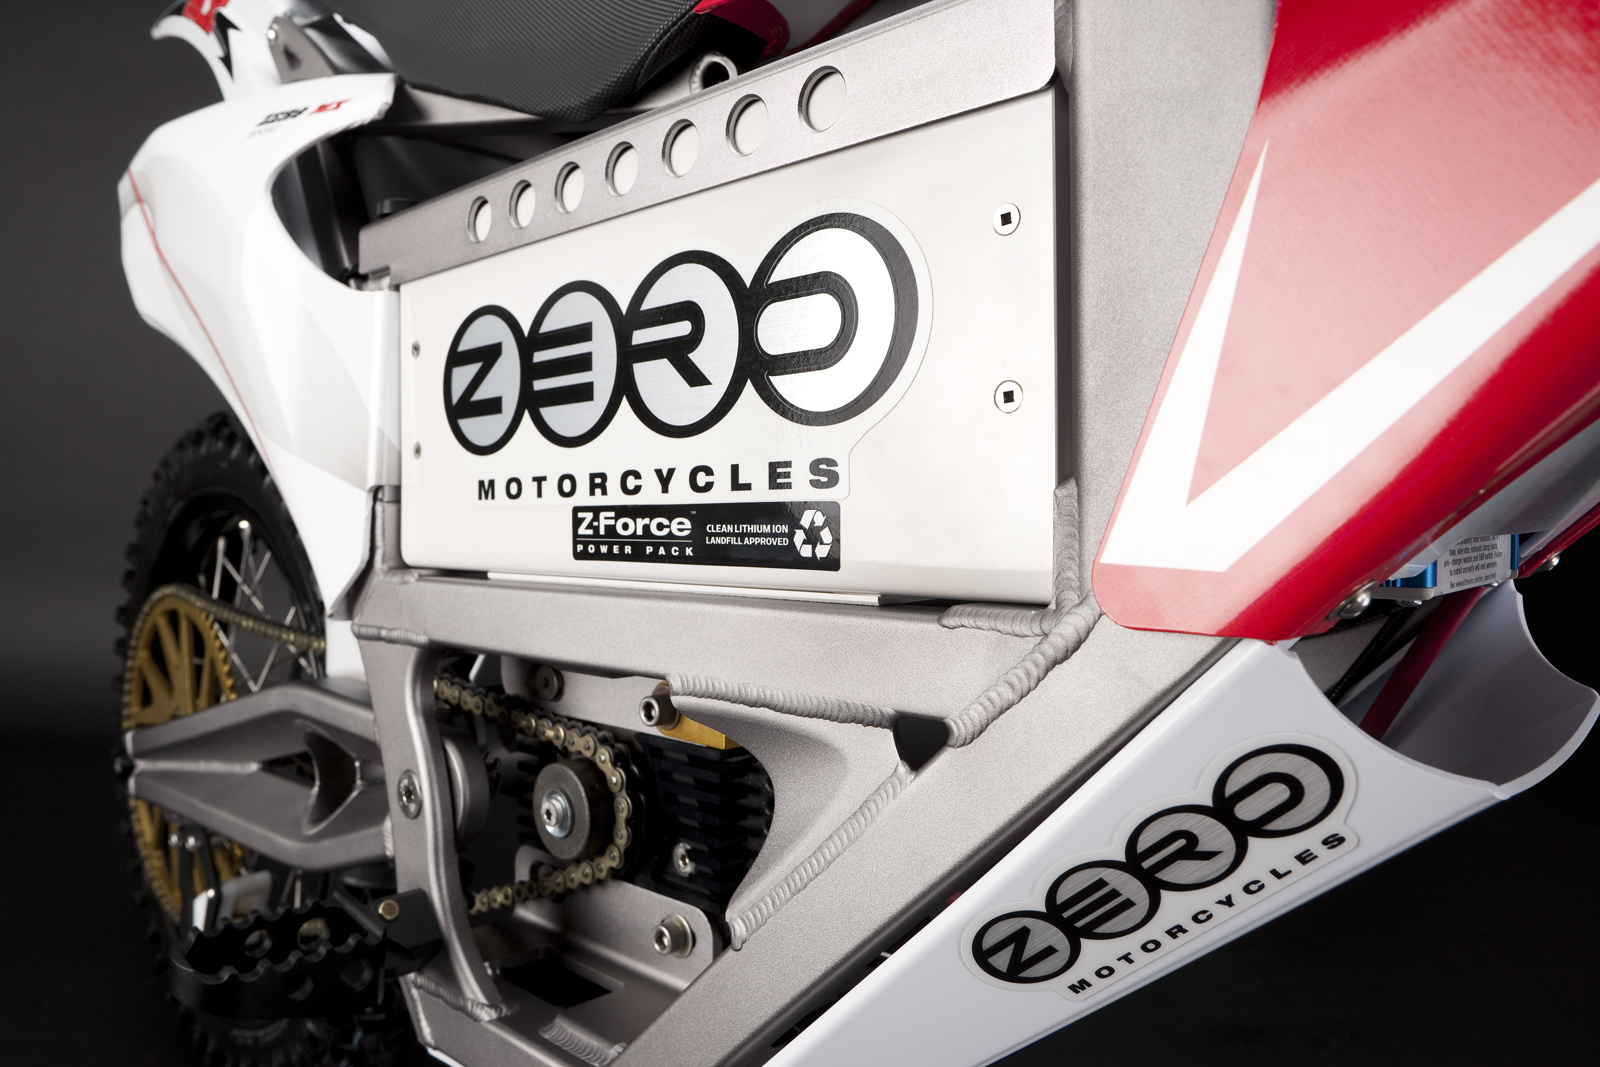 2010 Zero MX Electric Motorcycle: Battery